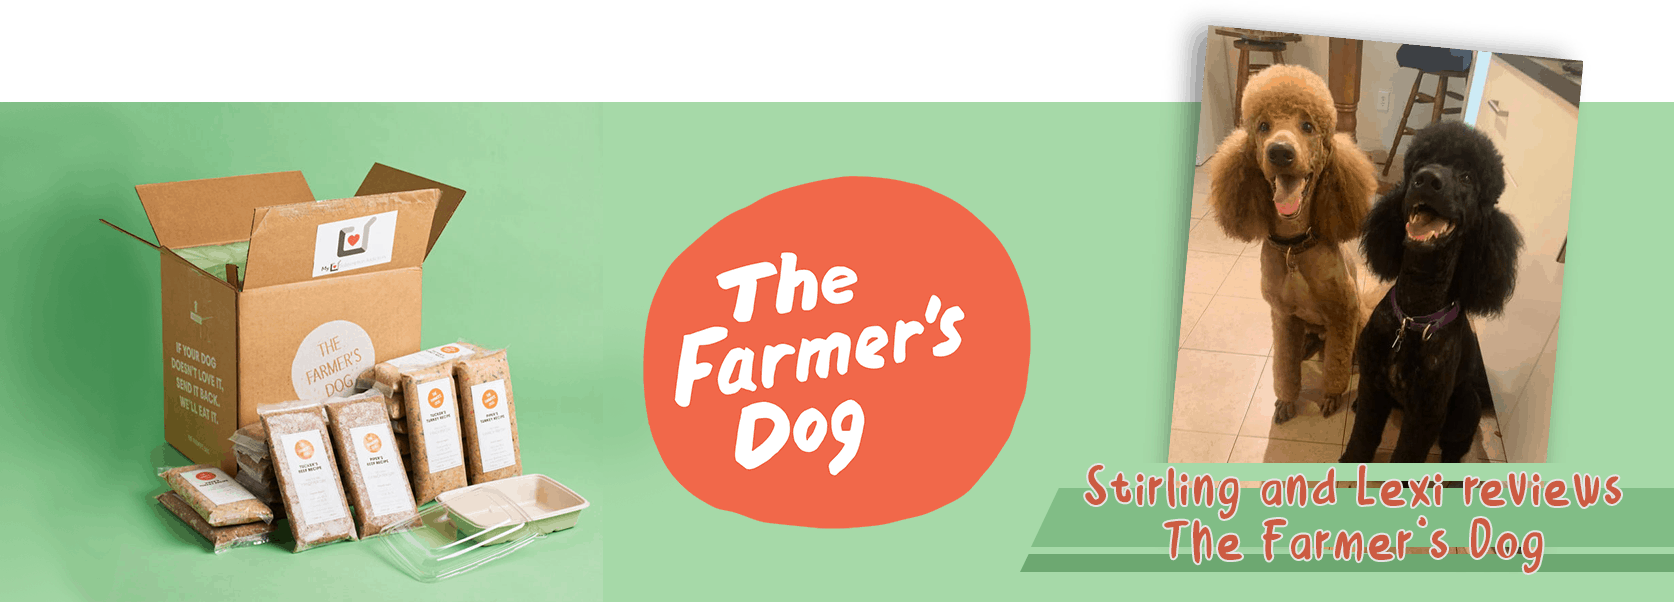 The Farmer's Dog Food Review